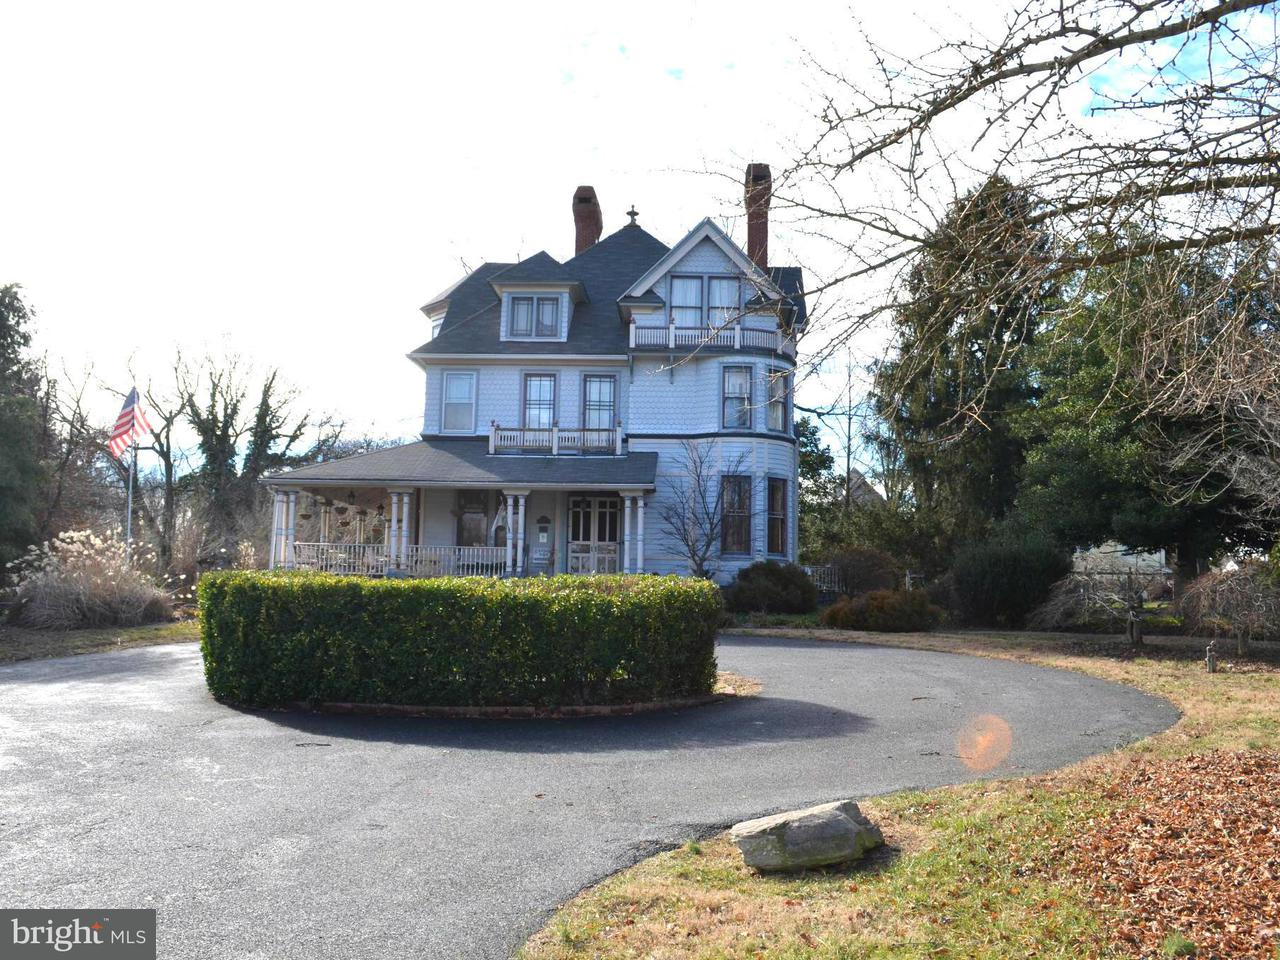 Commercial for Sale at 452 BEL AIR Avenue 452 BEL AIR Avenue Aberdeen, Maryland 21001 United States